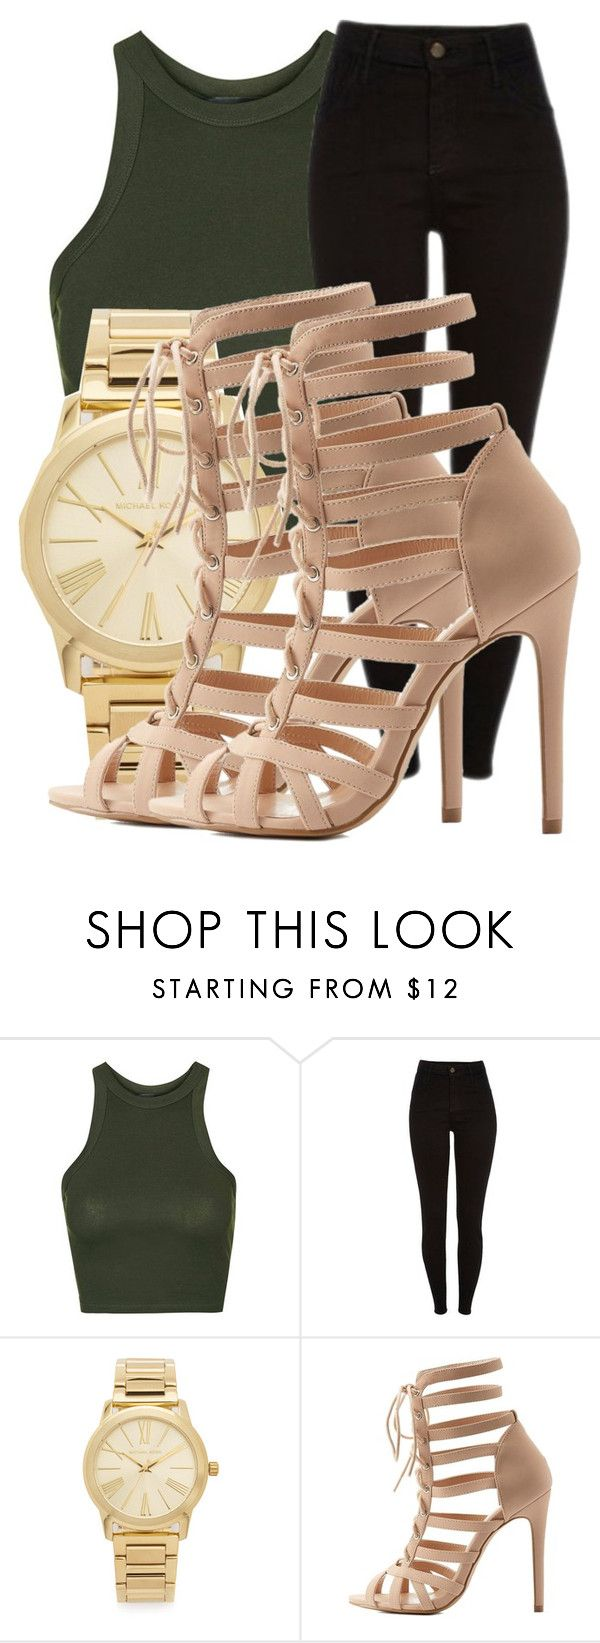 """Untitled #1238"" by brookeevans420 ❤ liked on Polyvore featuring Topshop, Michael Kors and Charlotte Russe"